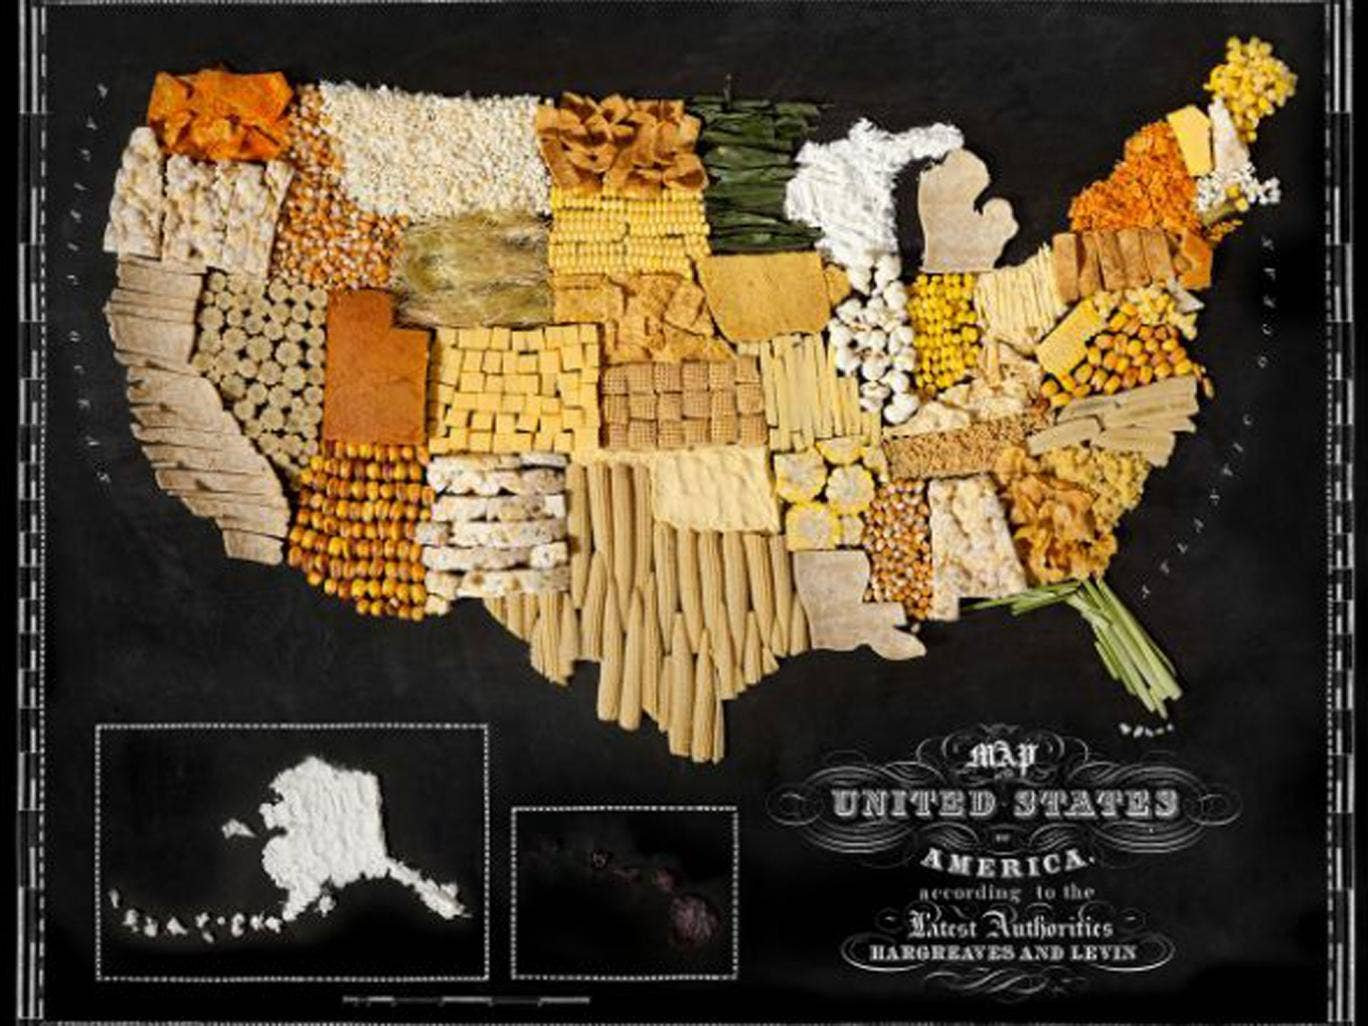 The fifty states of the USA are mapped out in corn